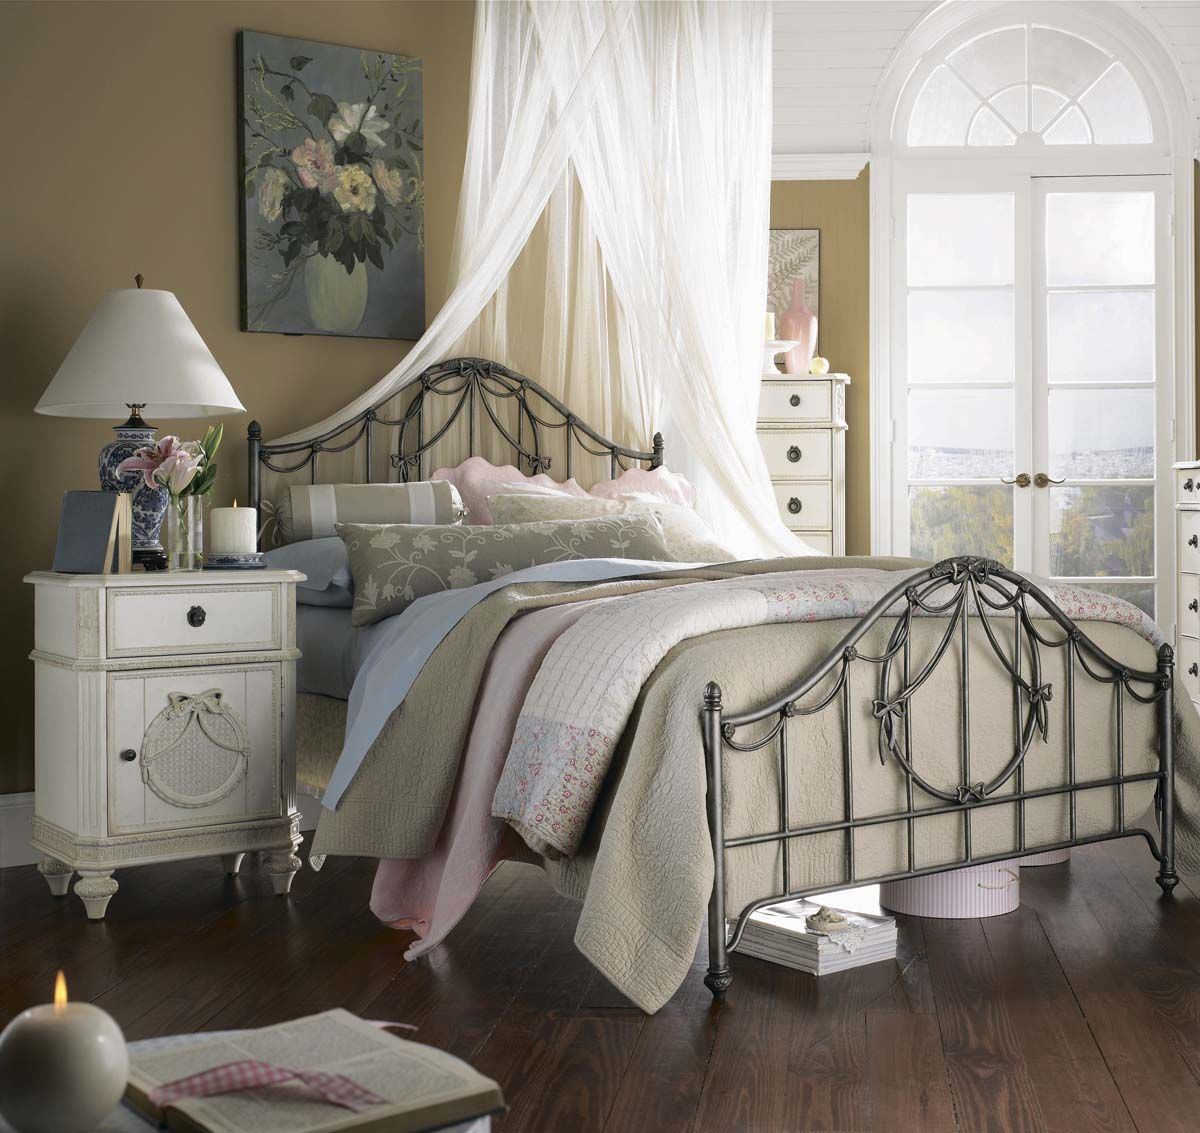 5 Vintage Bedroom Sets Ideas for 2015 - 5 Vintage Bedroom Sets Ideas For 2015 Vintage Bedrooms, Bedrooms